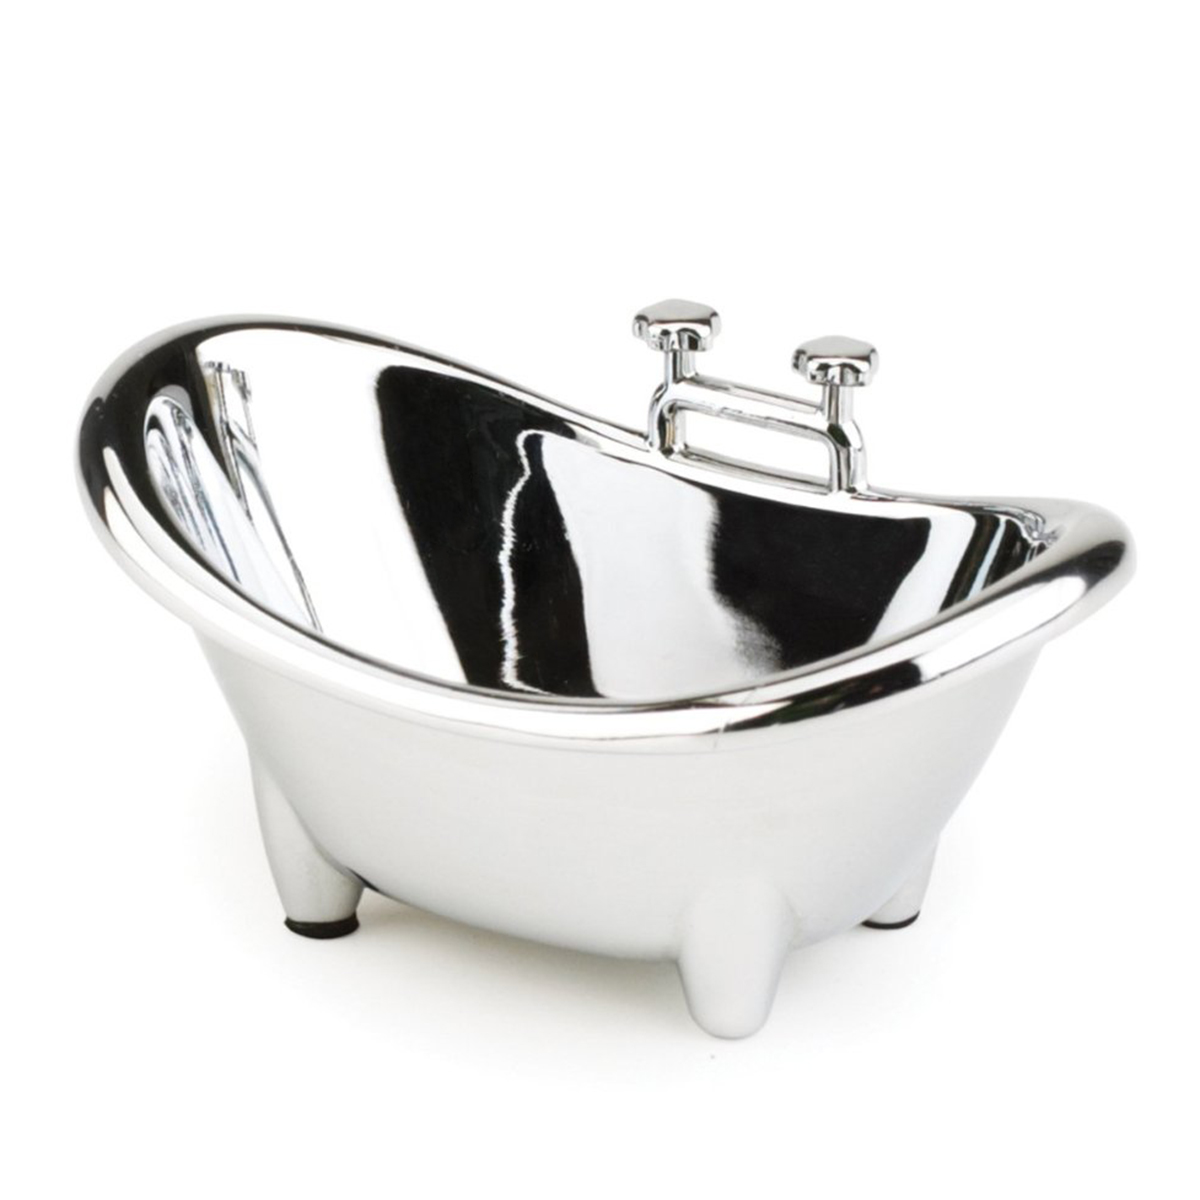 Umbra Muse Chrome-plated Ring Holder Bath Tub | eBay